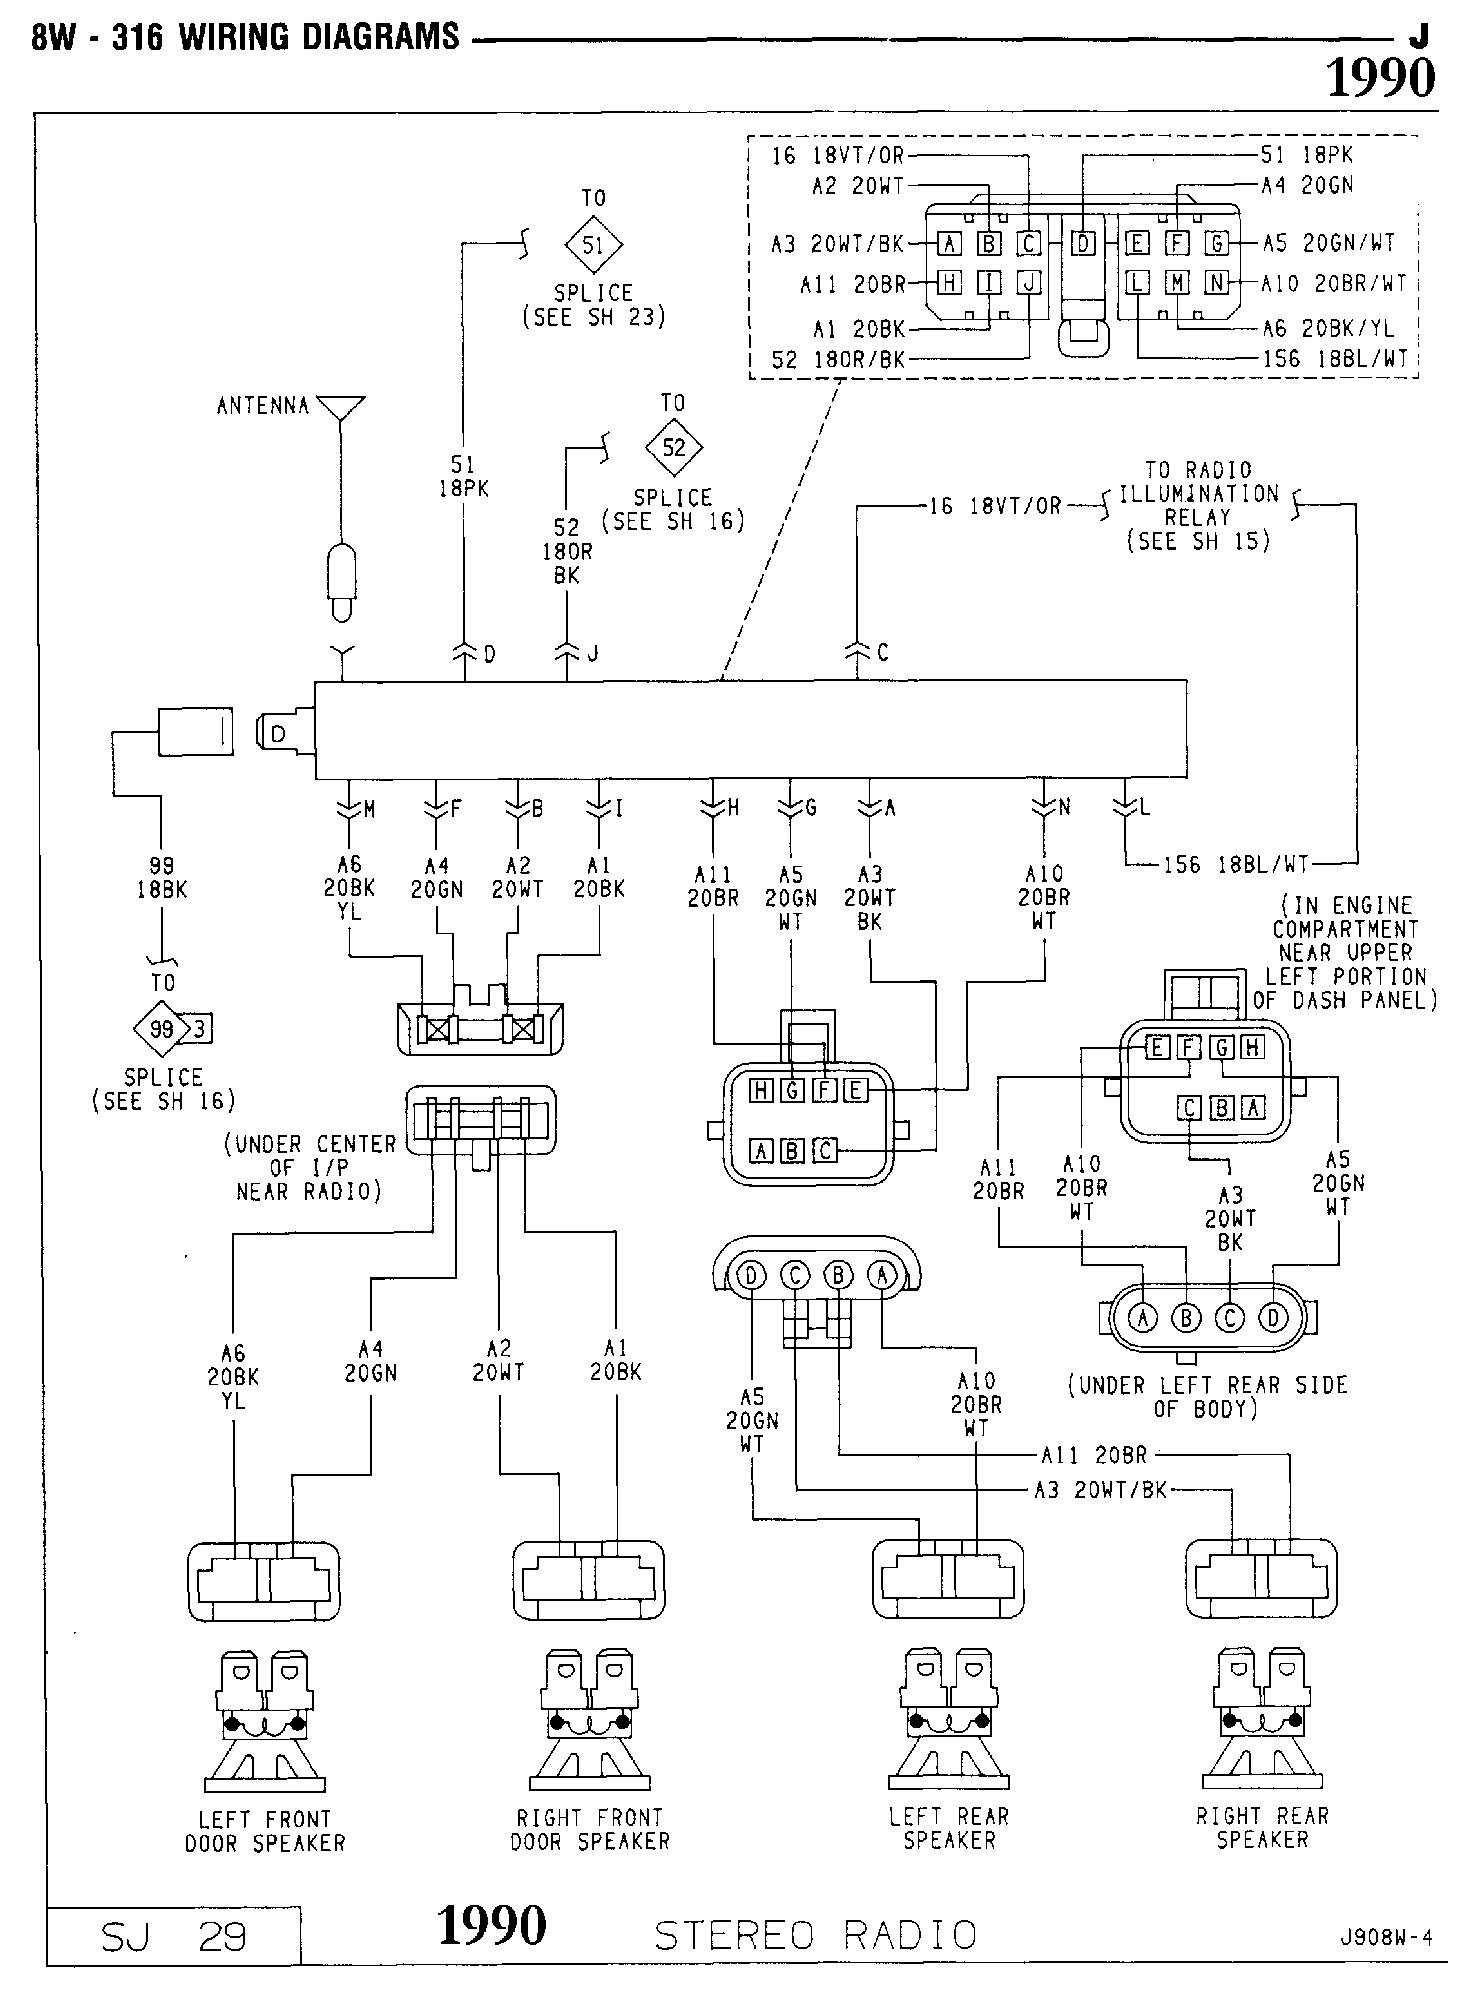 Back Of Jeep Radio Wiring Diagram Diagrams For Compass 1990 Cherokee Stereo 40 Harness Pins